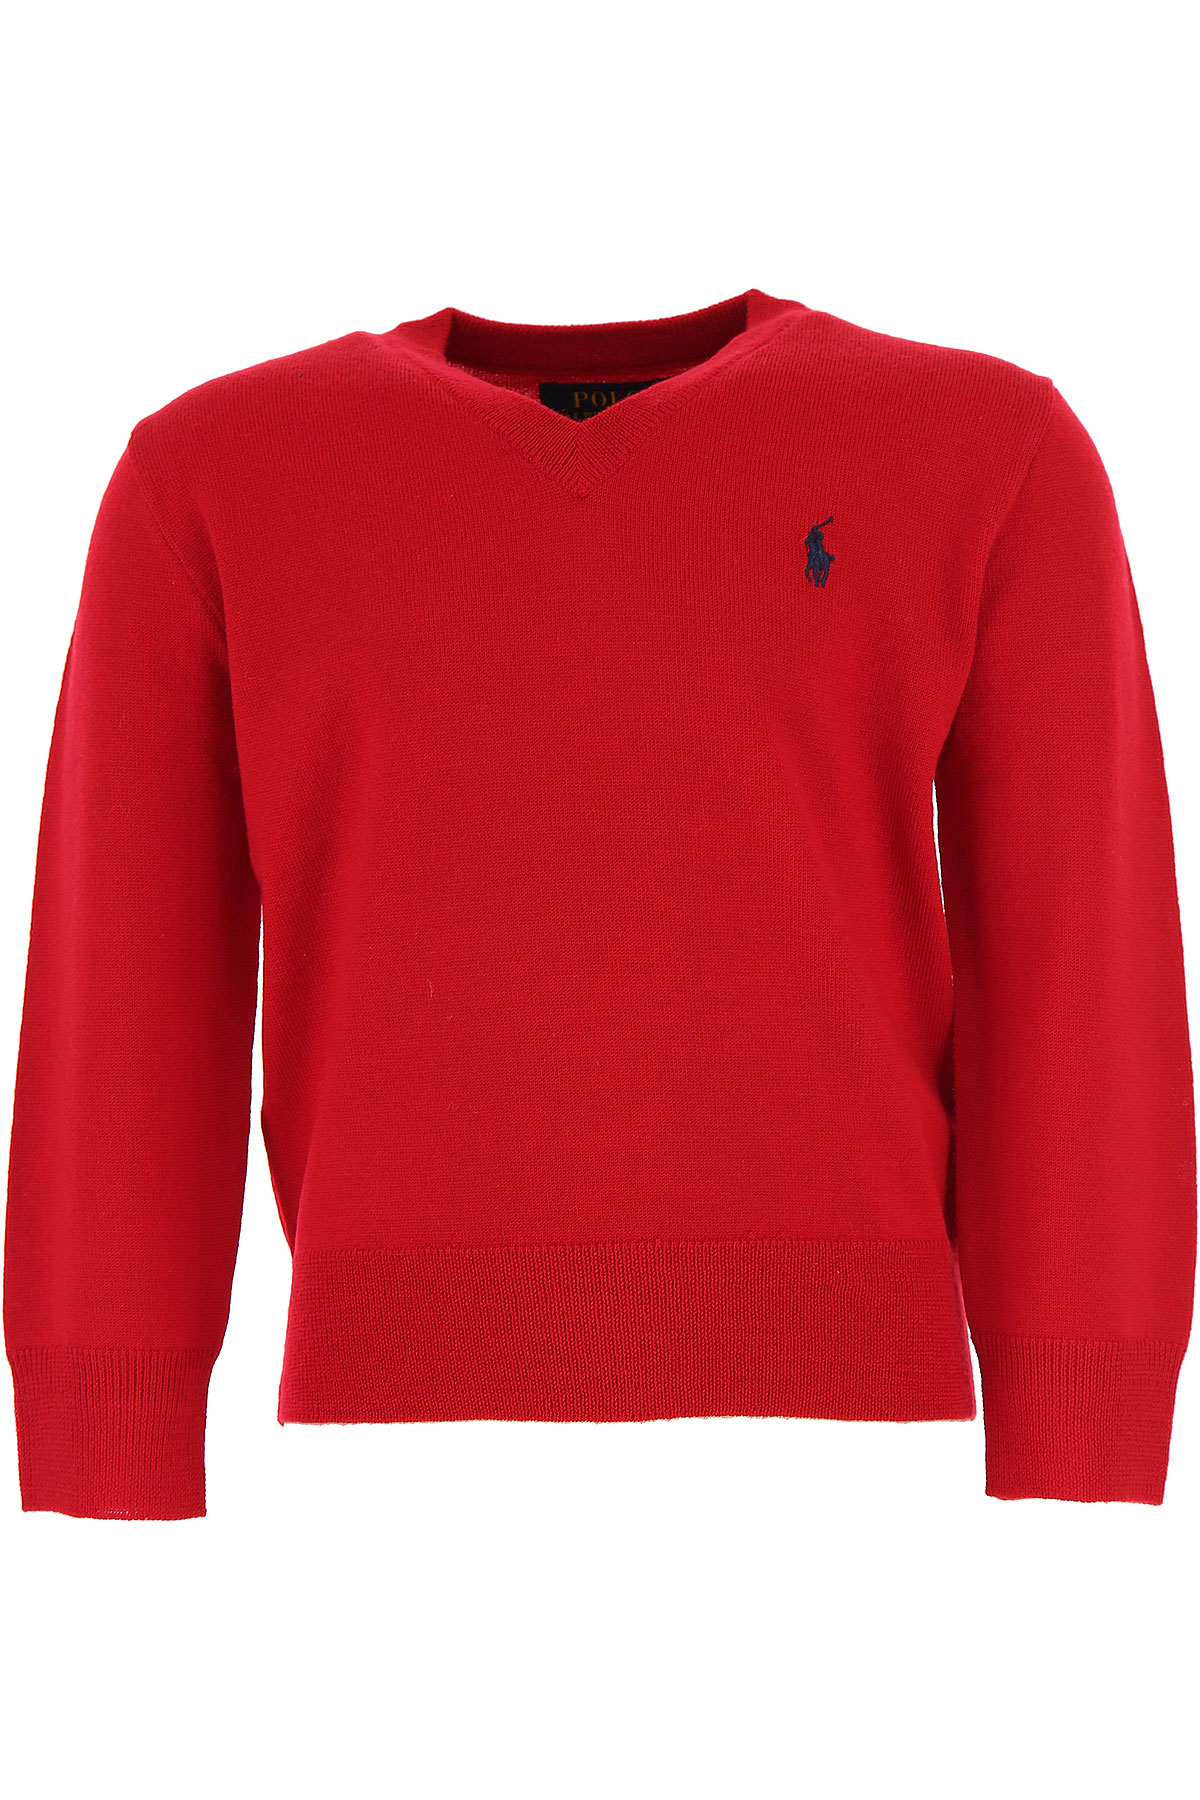 Ralph Lauren Kids Sweaters for Boys On Sale, Red, Wool, 2017, 2Y 4Y USA-414214